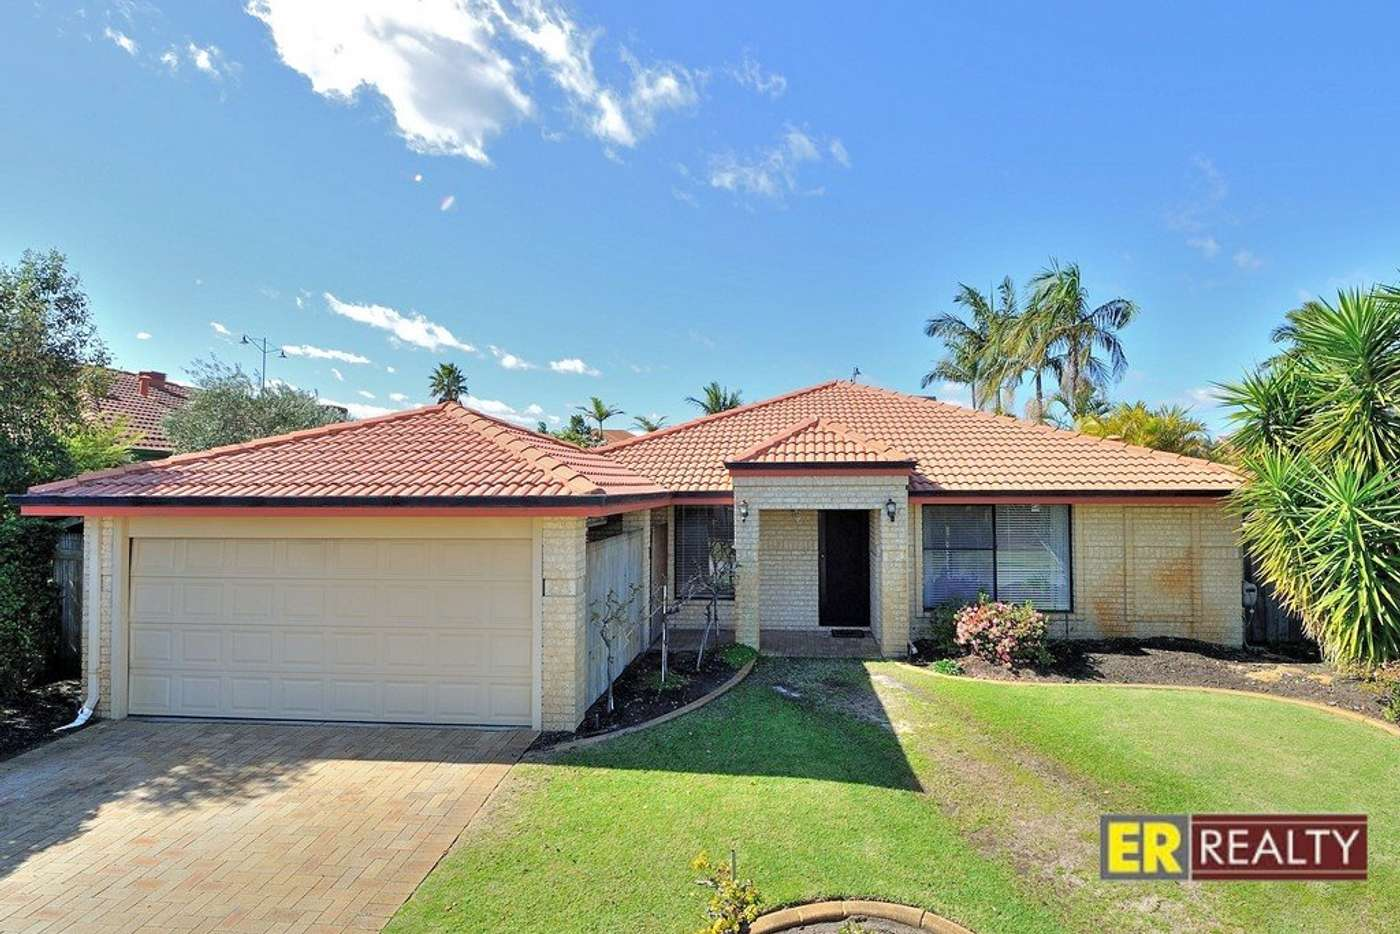 Main view of Homely house listing, 6 Rivergum Close, Ellenbrook WA 6069